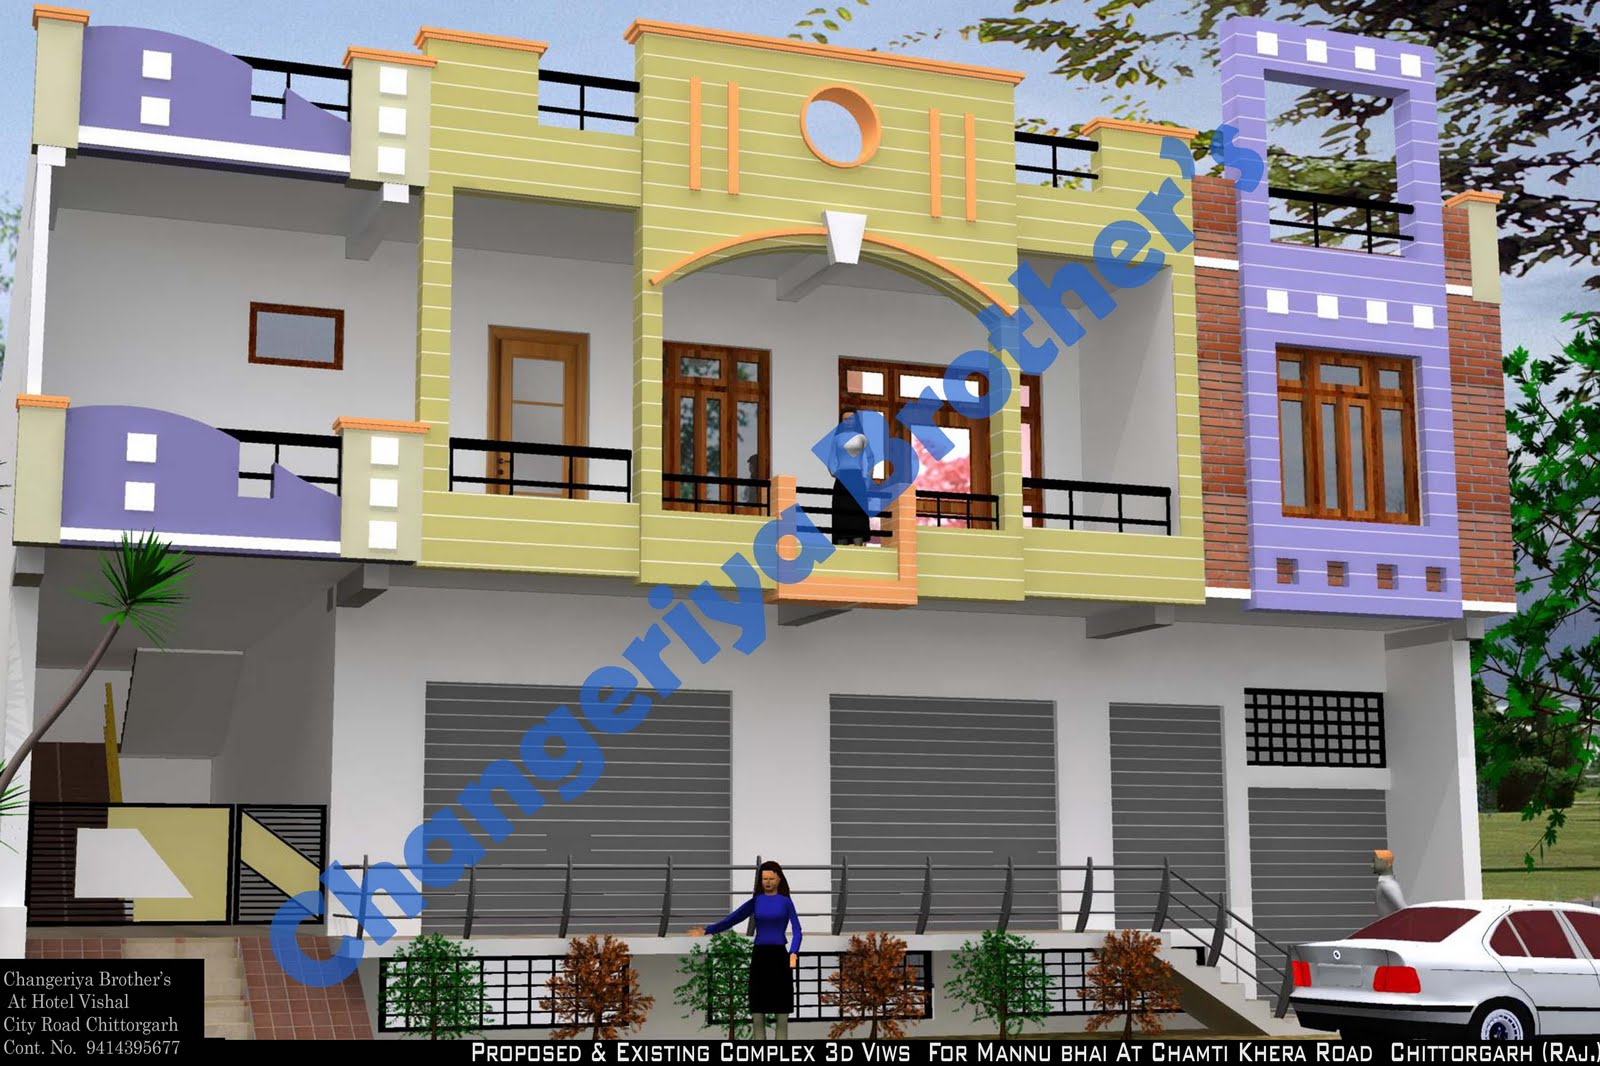 Mr Mannu Bhai 39 S Complex Project Exterior Design In 3d